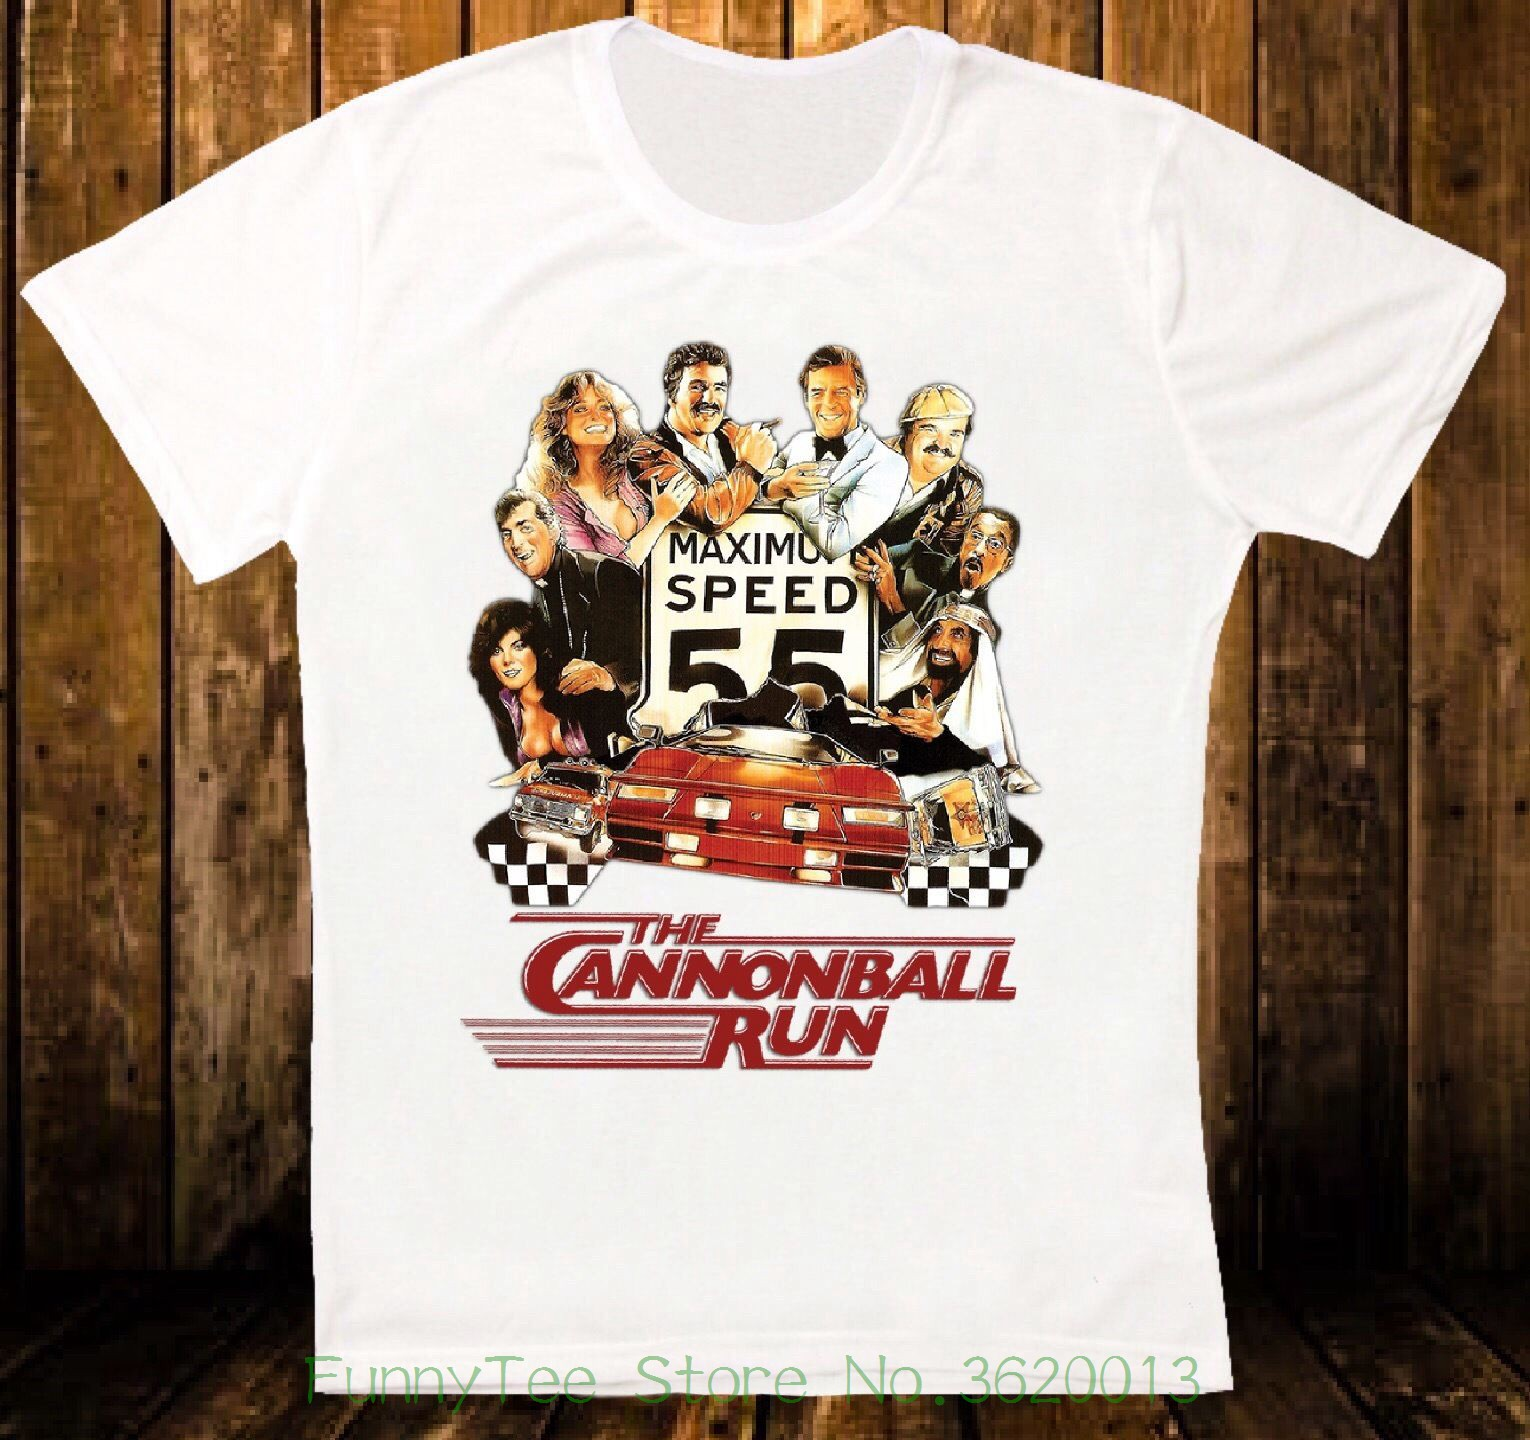 Womens Tee The Cannonball Runner Movie Car Race Retro Vintage Hipster Unisex T Shirt 901 Brand Korean Funny